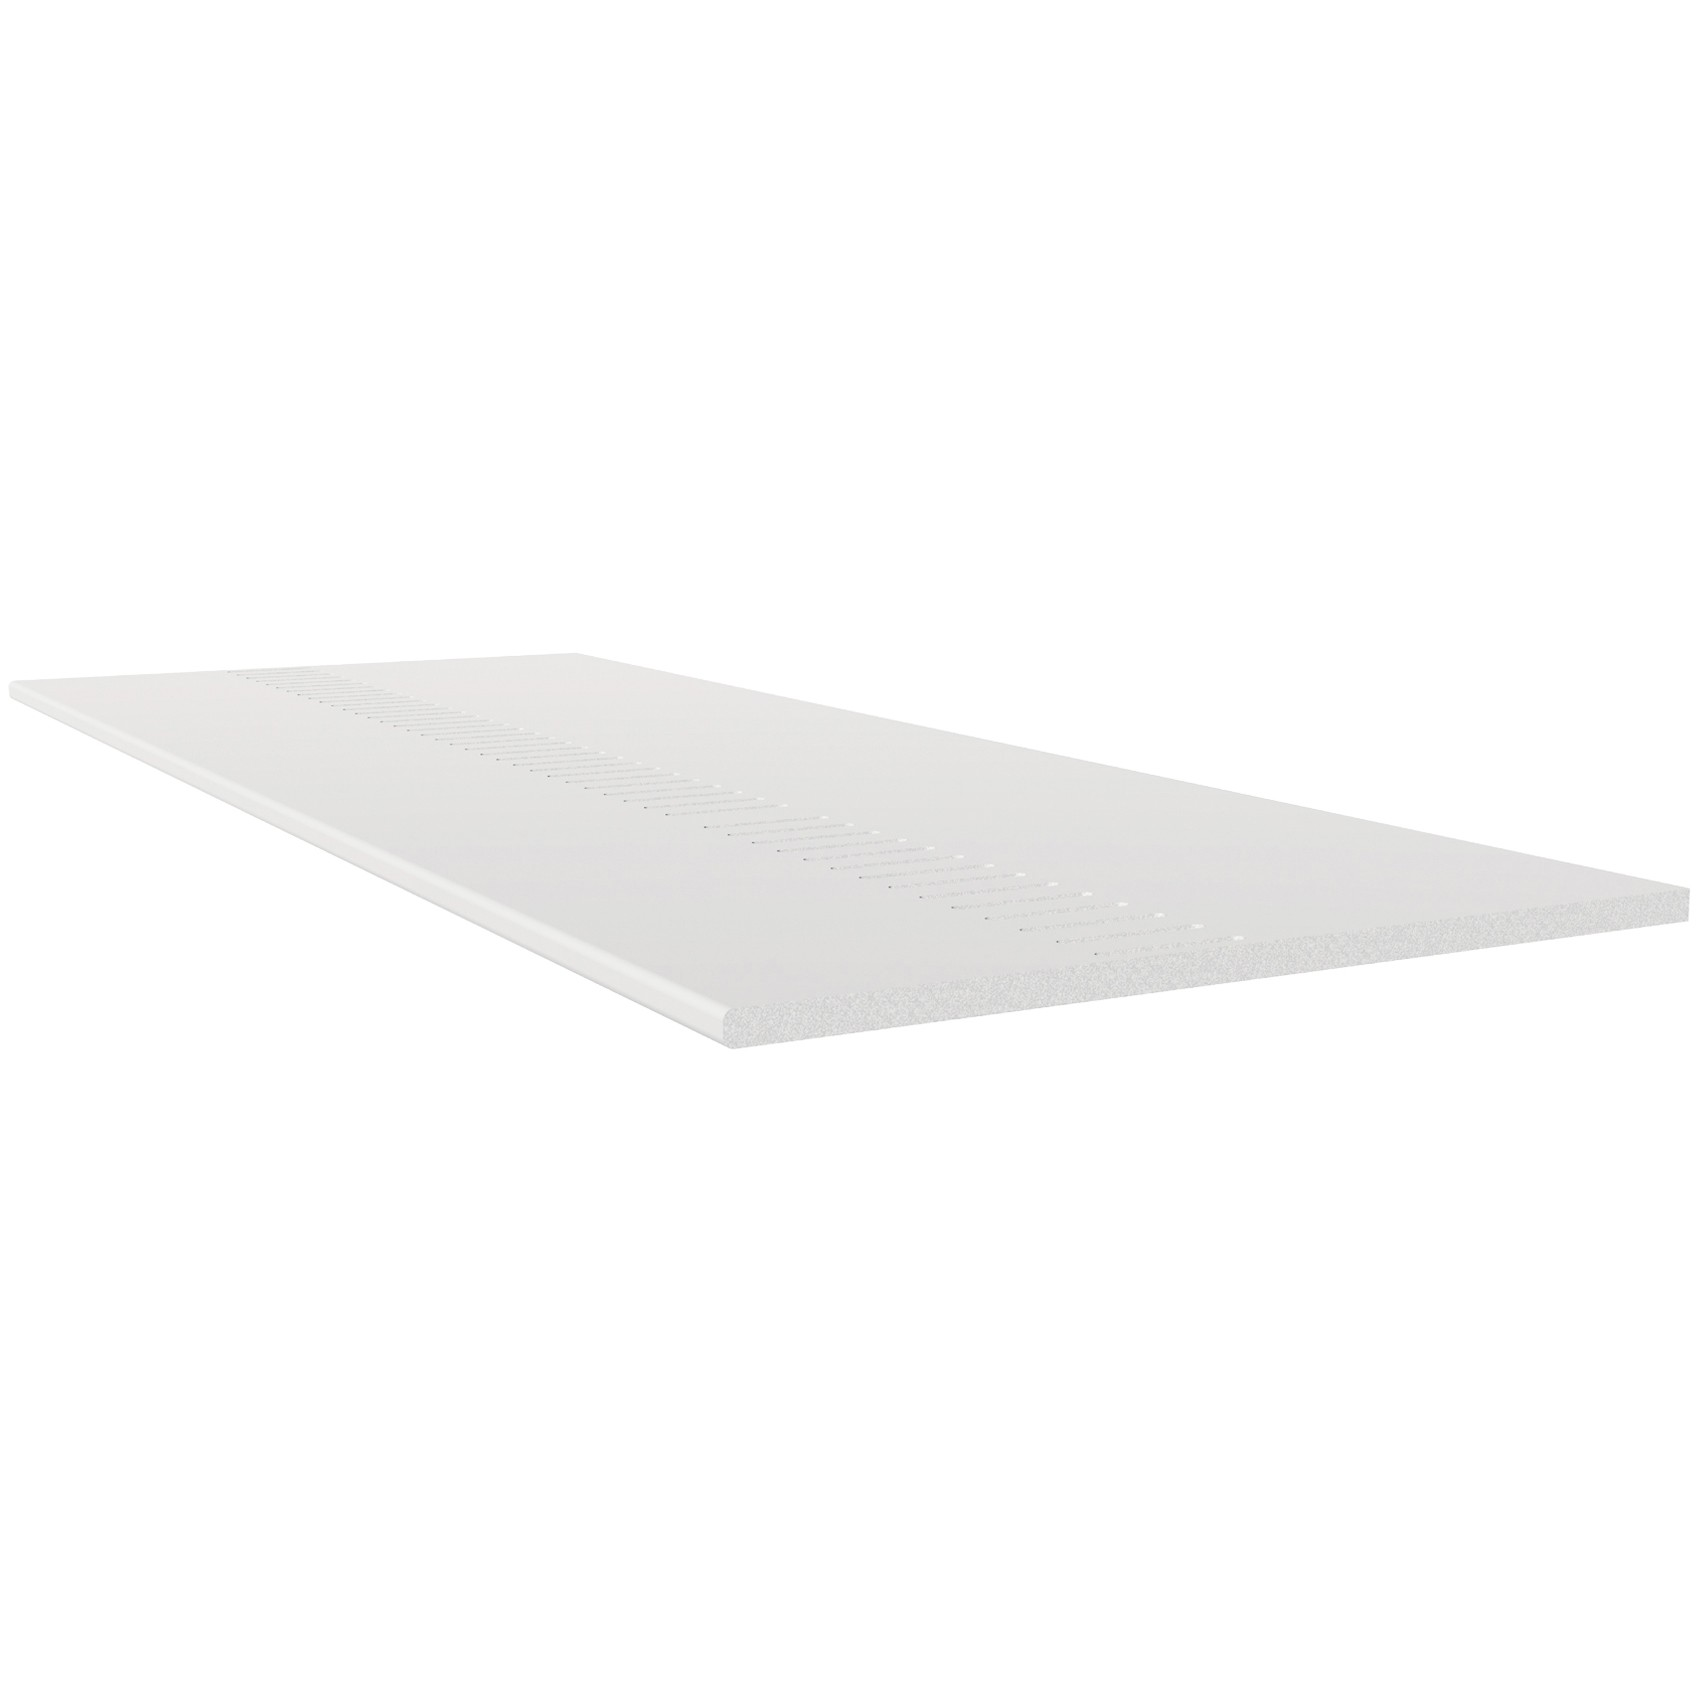 Freefoam Pre Vented 10mm Solid Soffit Board - White, 300mm, 5 metre